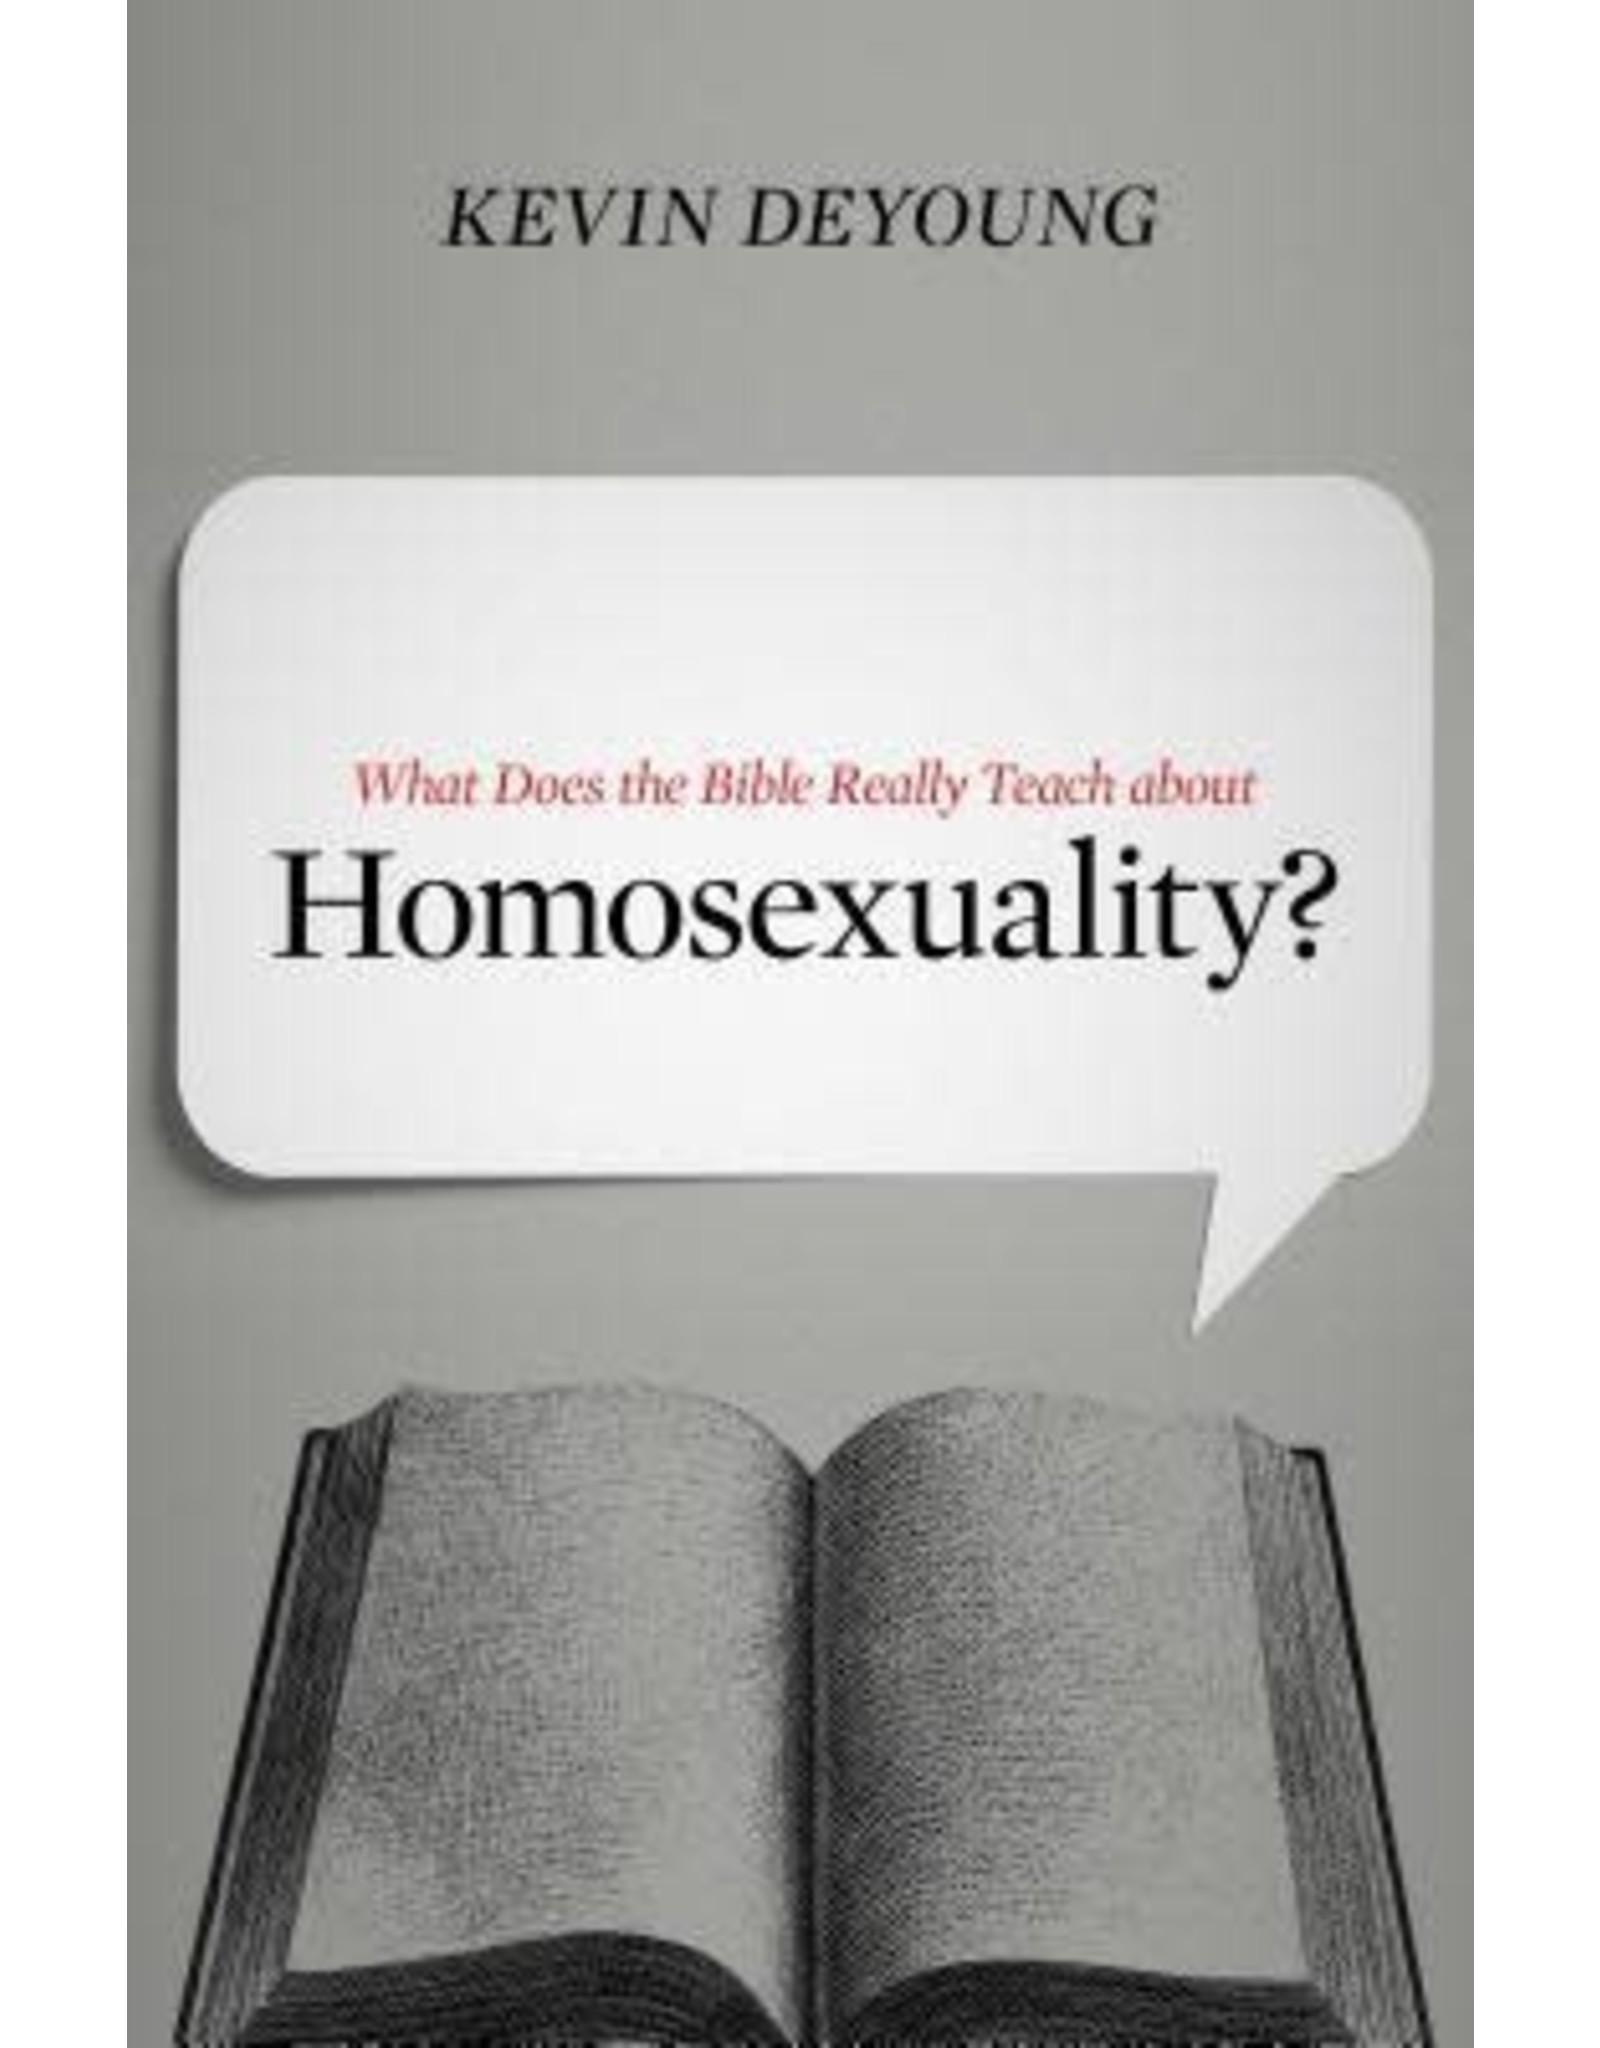 What the Bible Really Teaches About Homosexuality